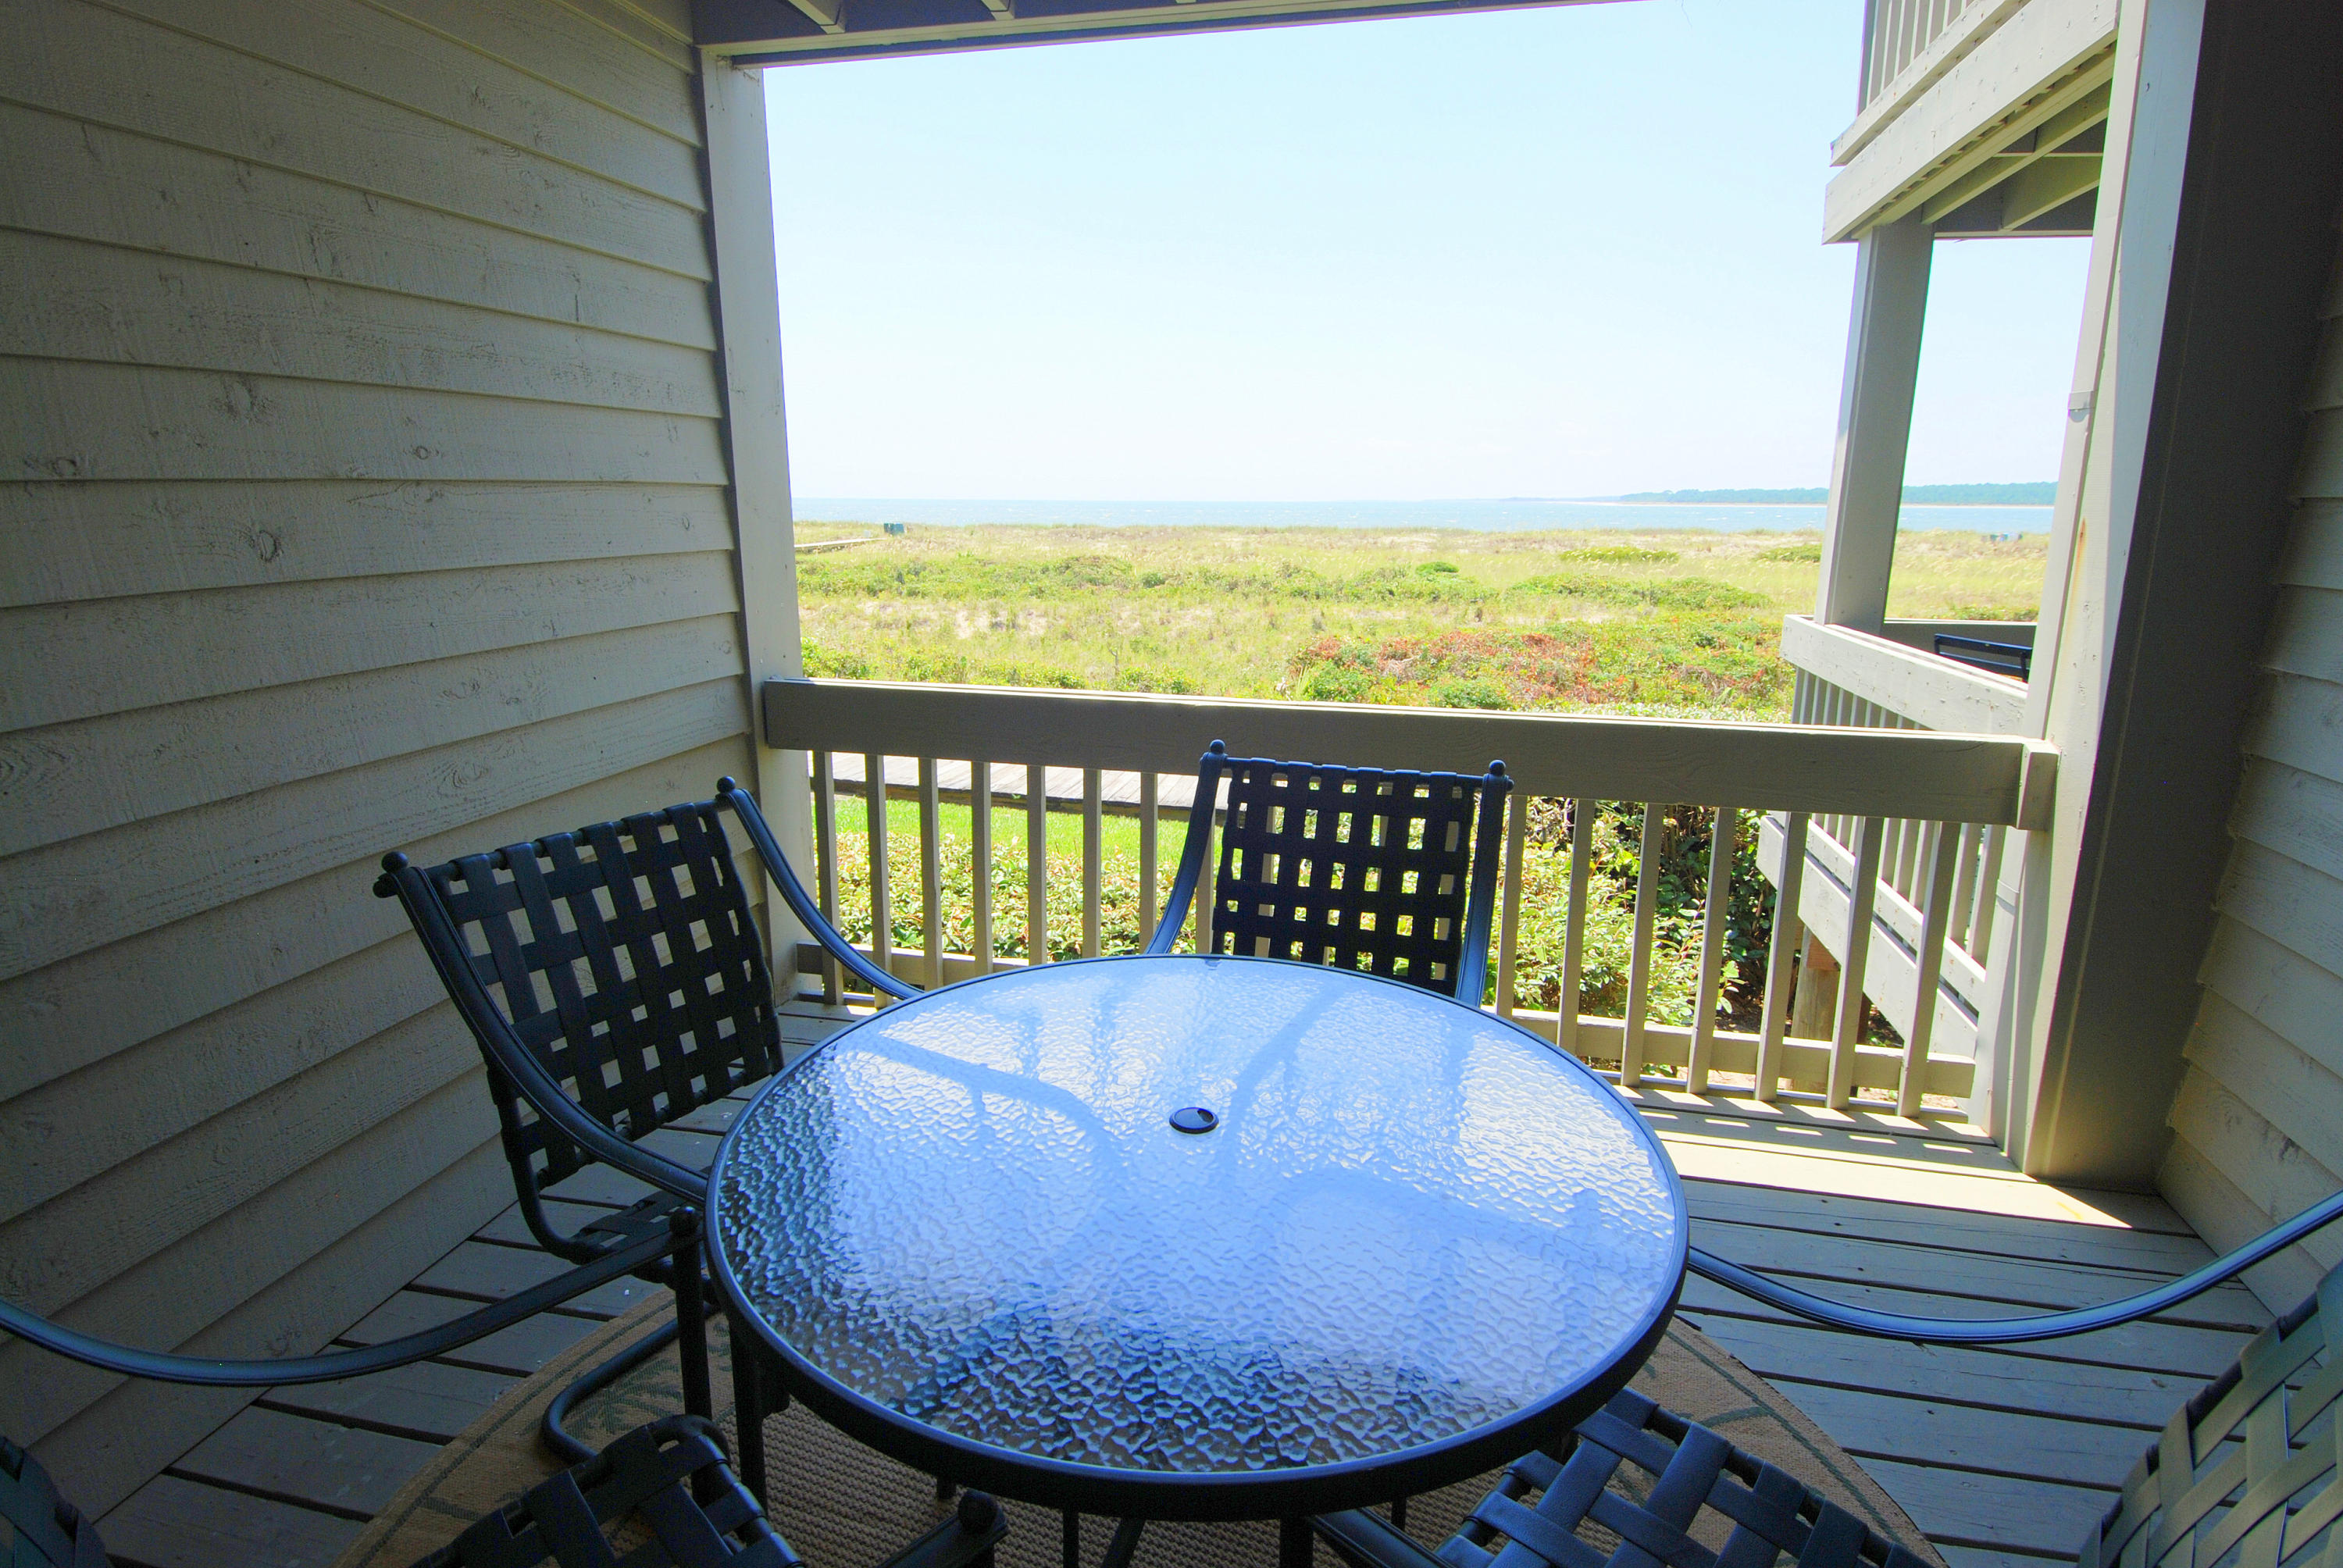 Seabrook Island Homes For Sale - 1375 Pelican Watch Villa, Seabrook Island, SC - 4